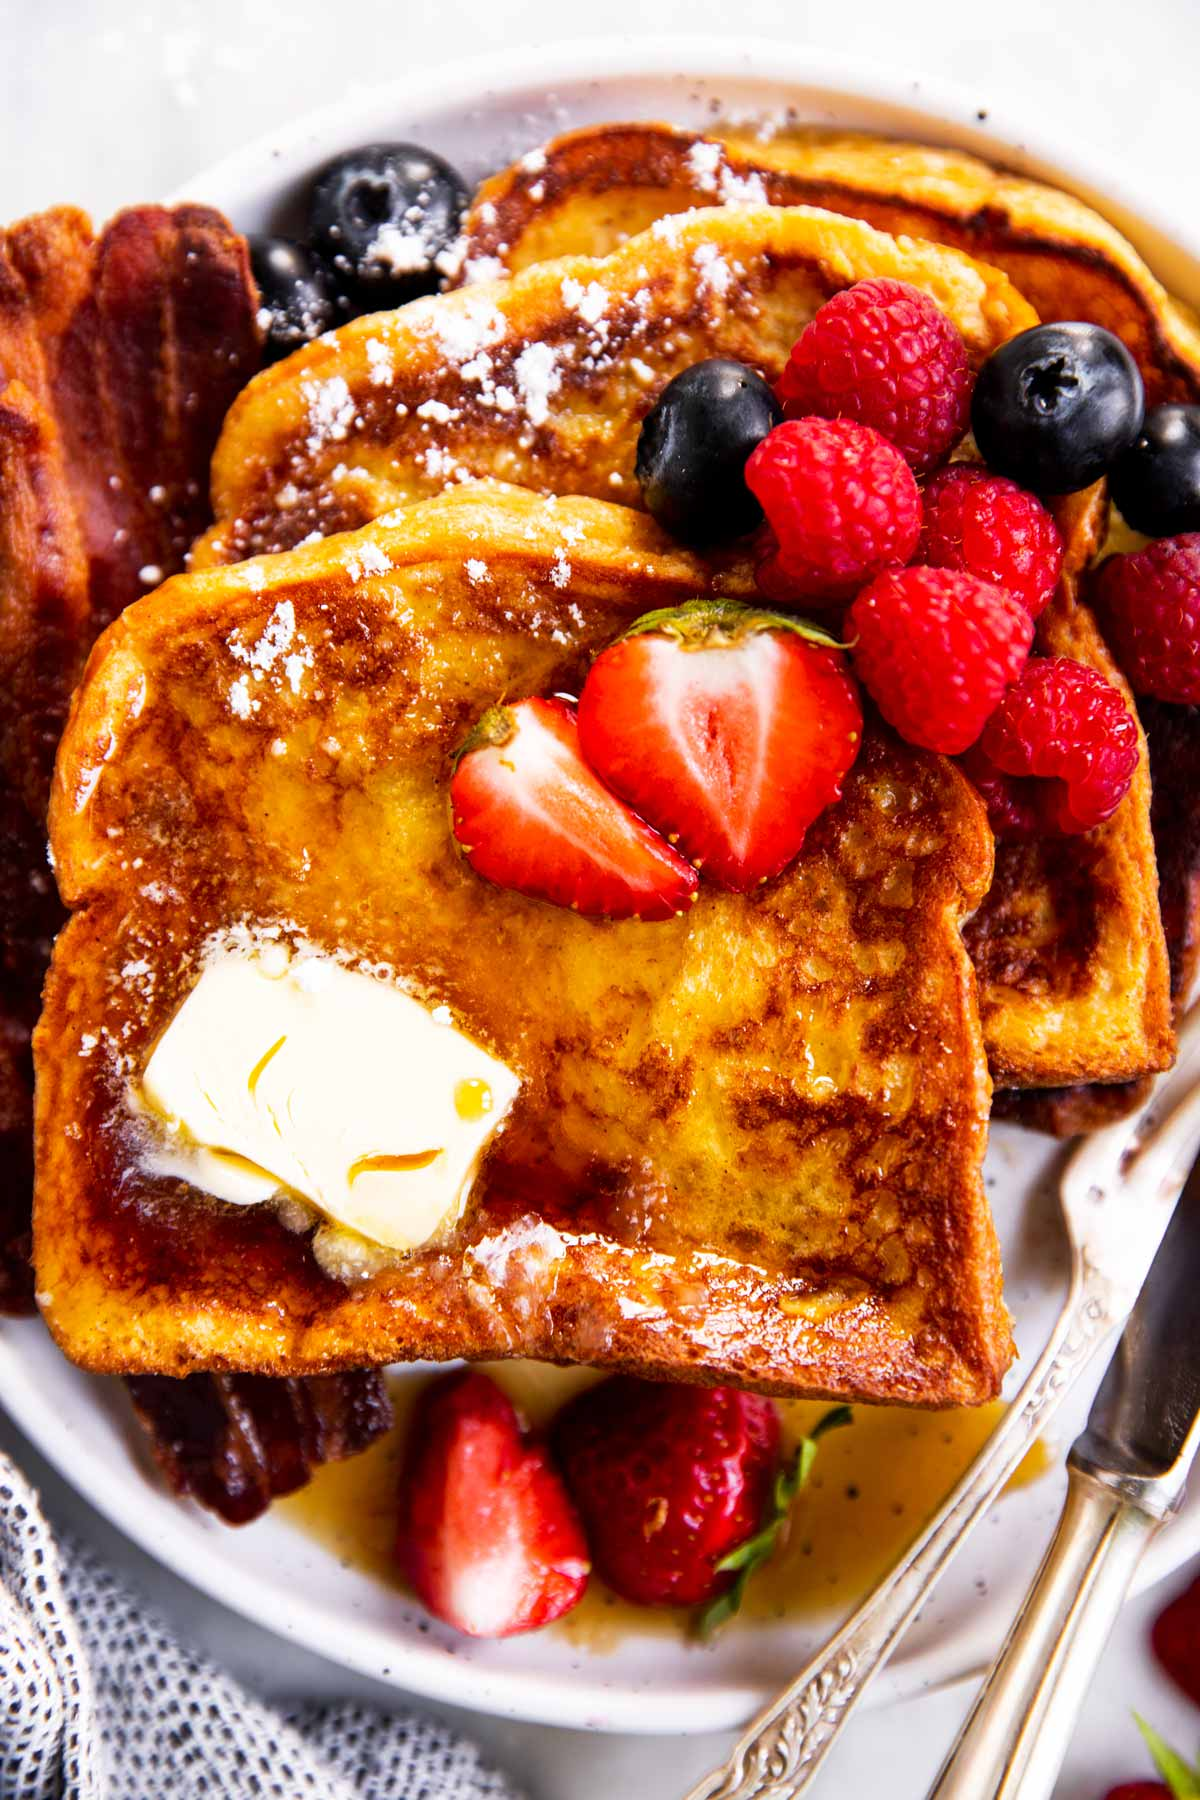 three slices of French toast on white plate with butter, bacon and berries